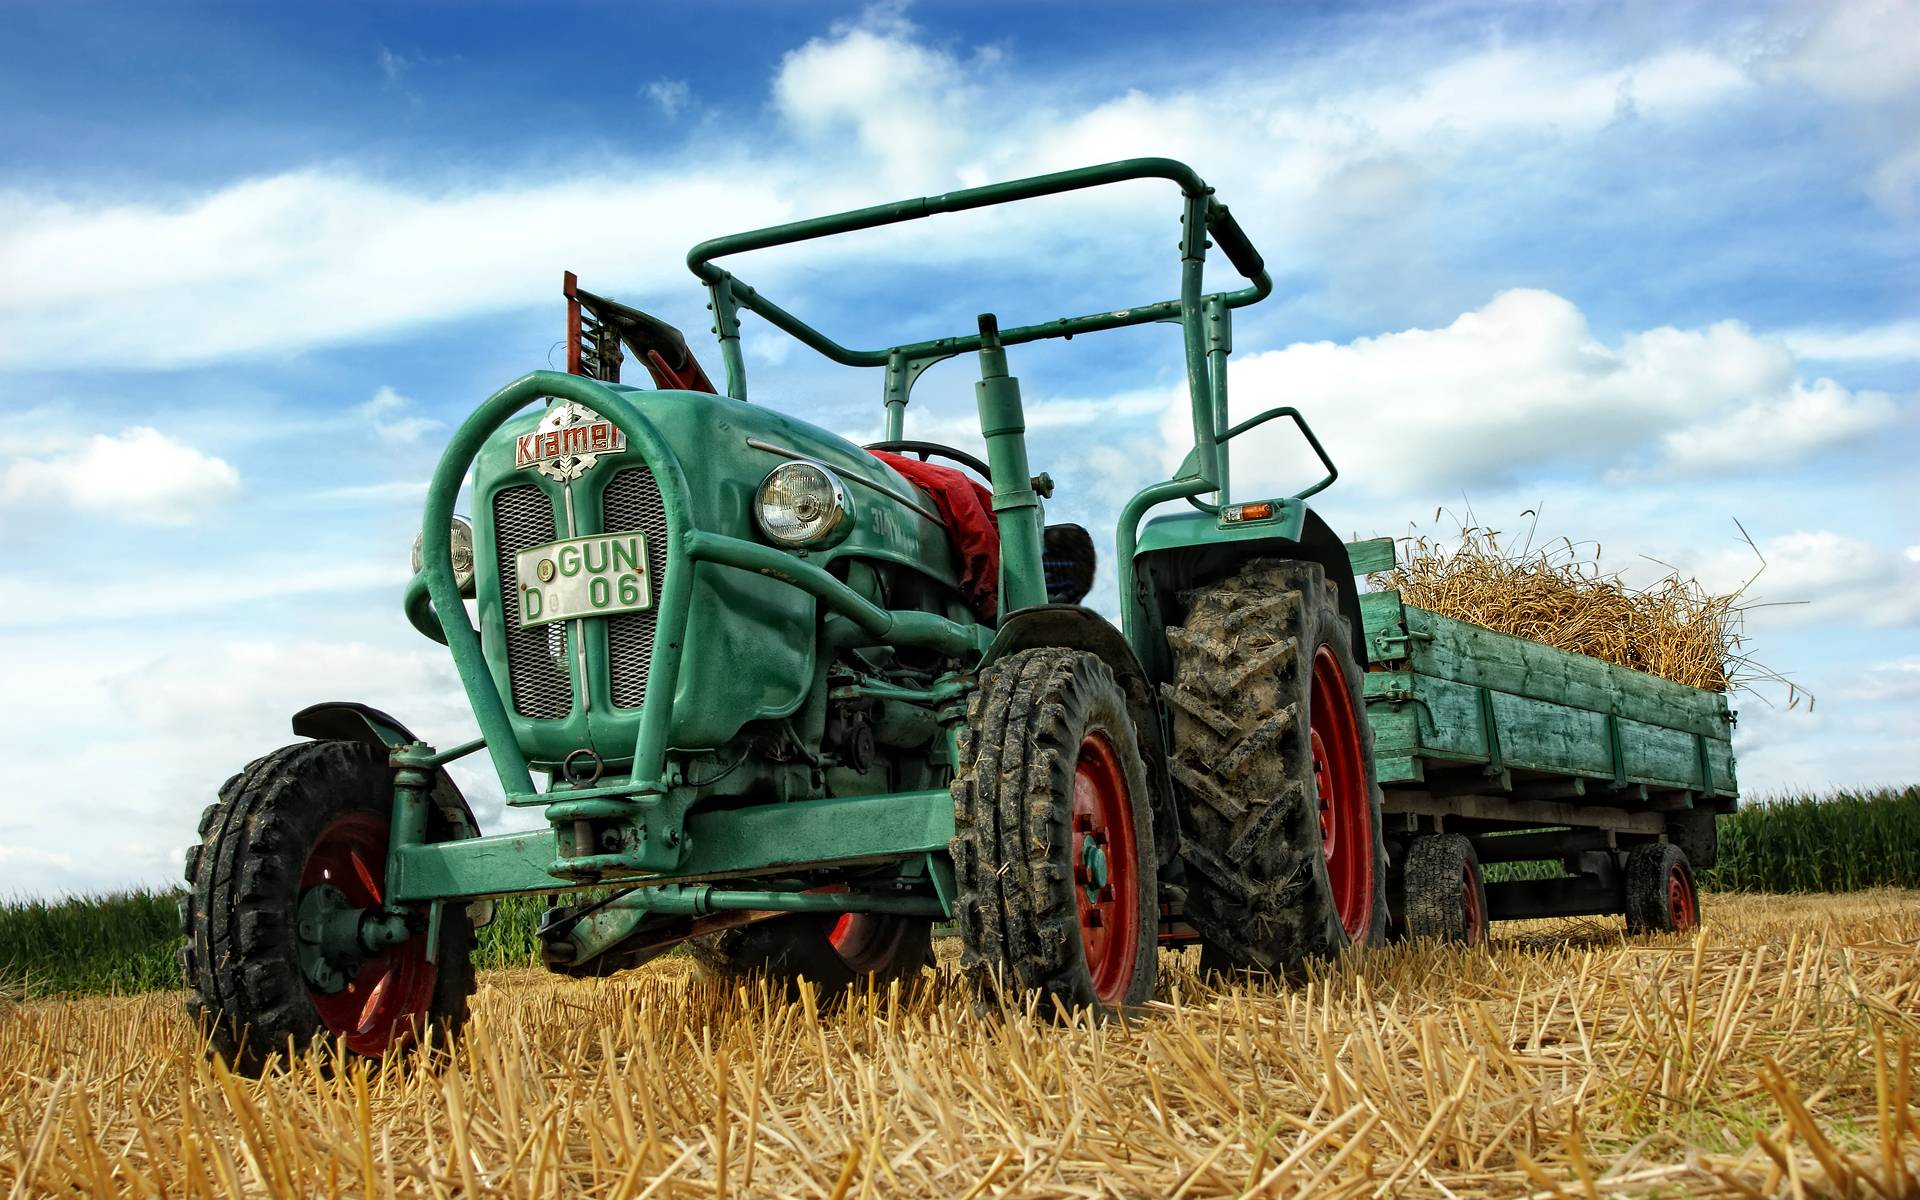 Download Tractor 7448 1920x1200 px High Resolution Wallpapers